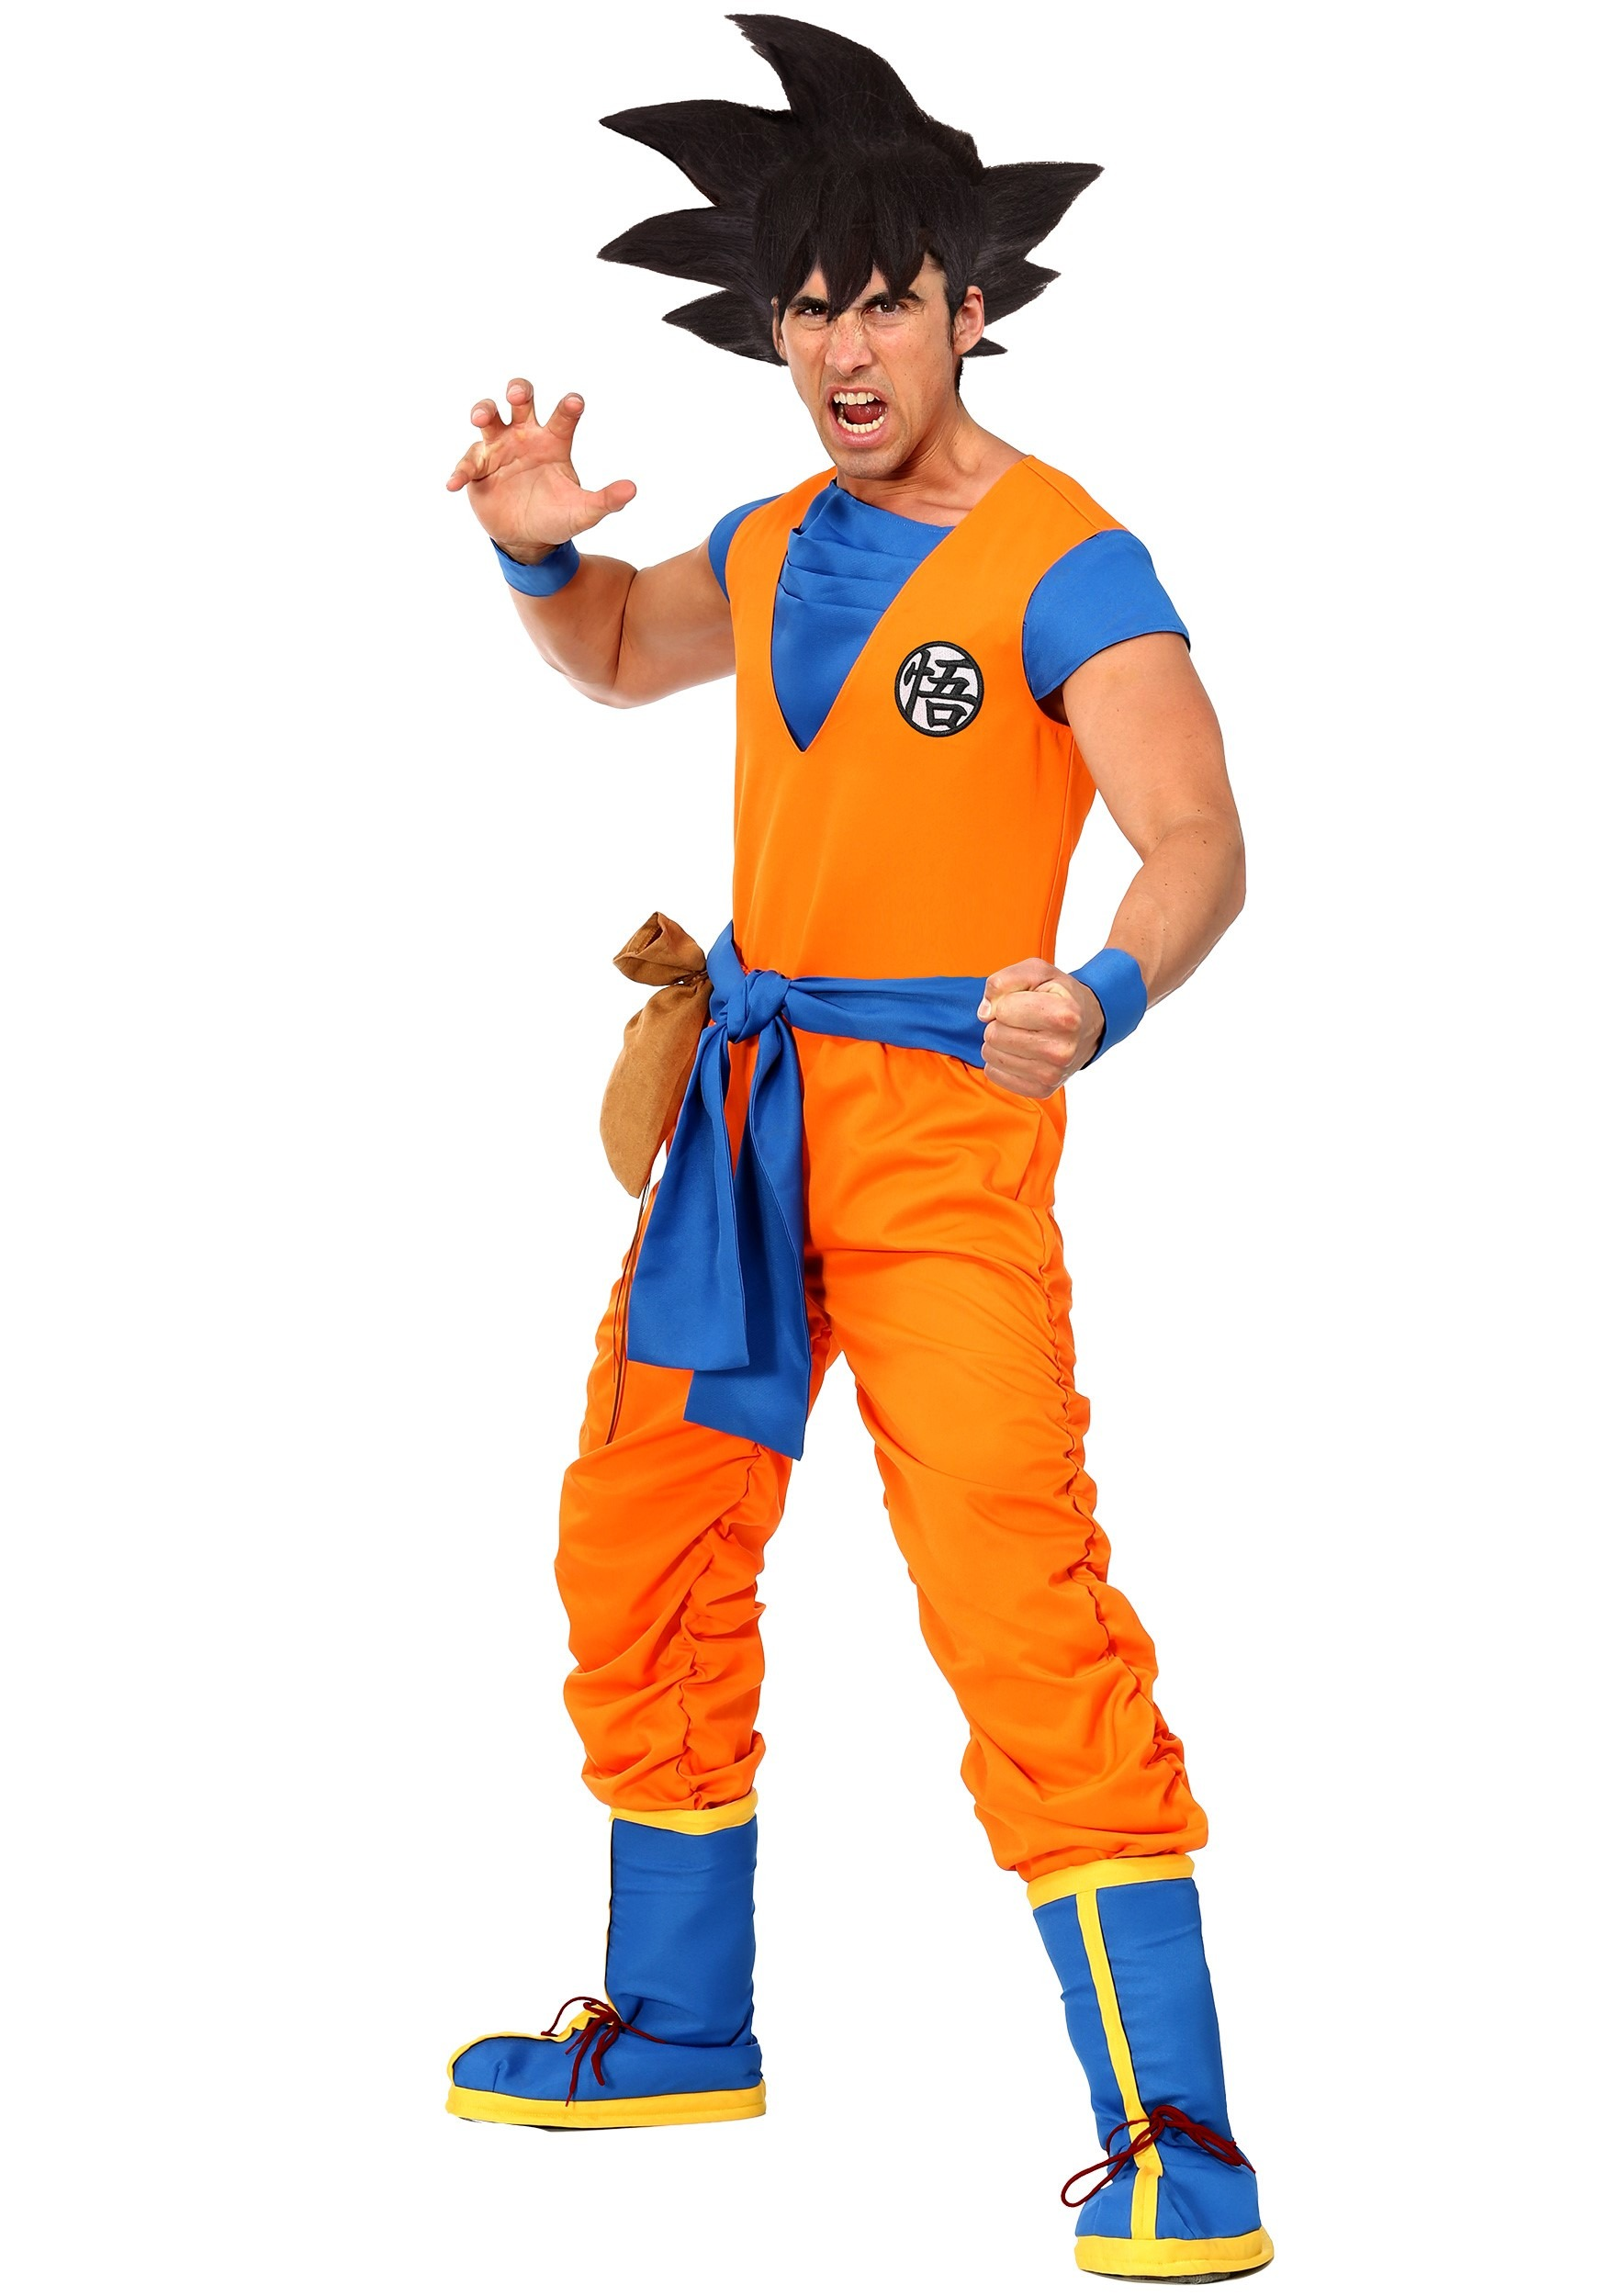 Authentic Dragon Ball Z Goku Costume for Adults